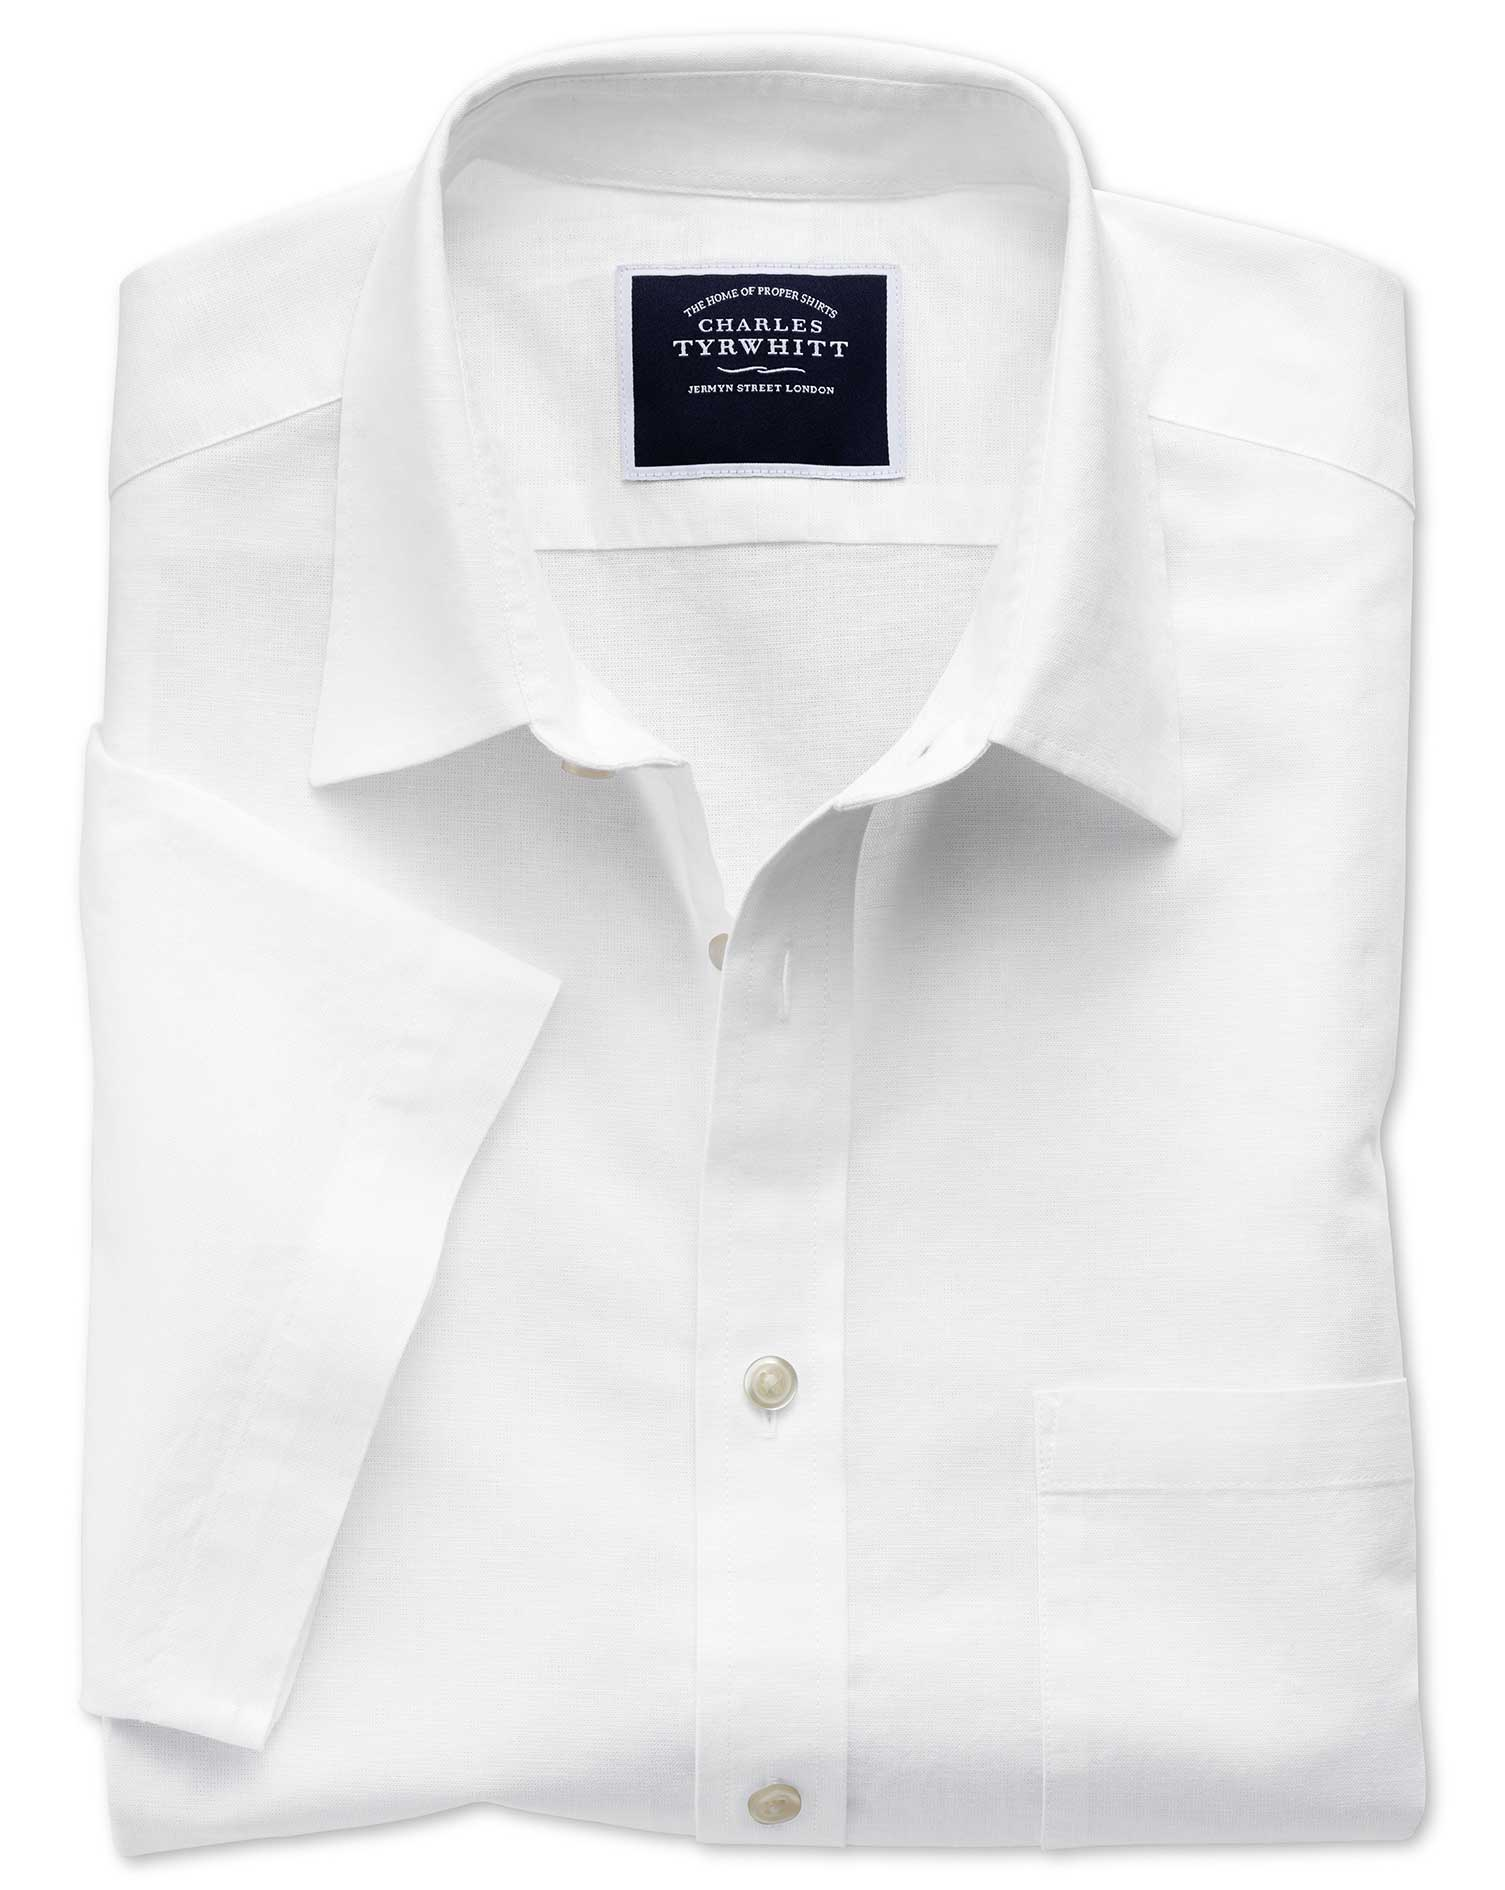 Classic Fit Cotton Linen Short Sleeve White Plain Shirt Single Cuff Size Large by Charles Tyrwhitt